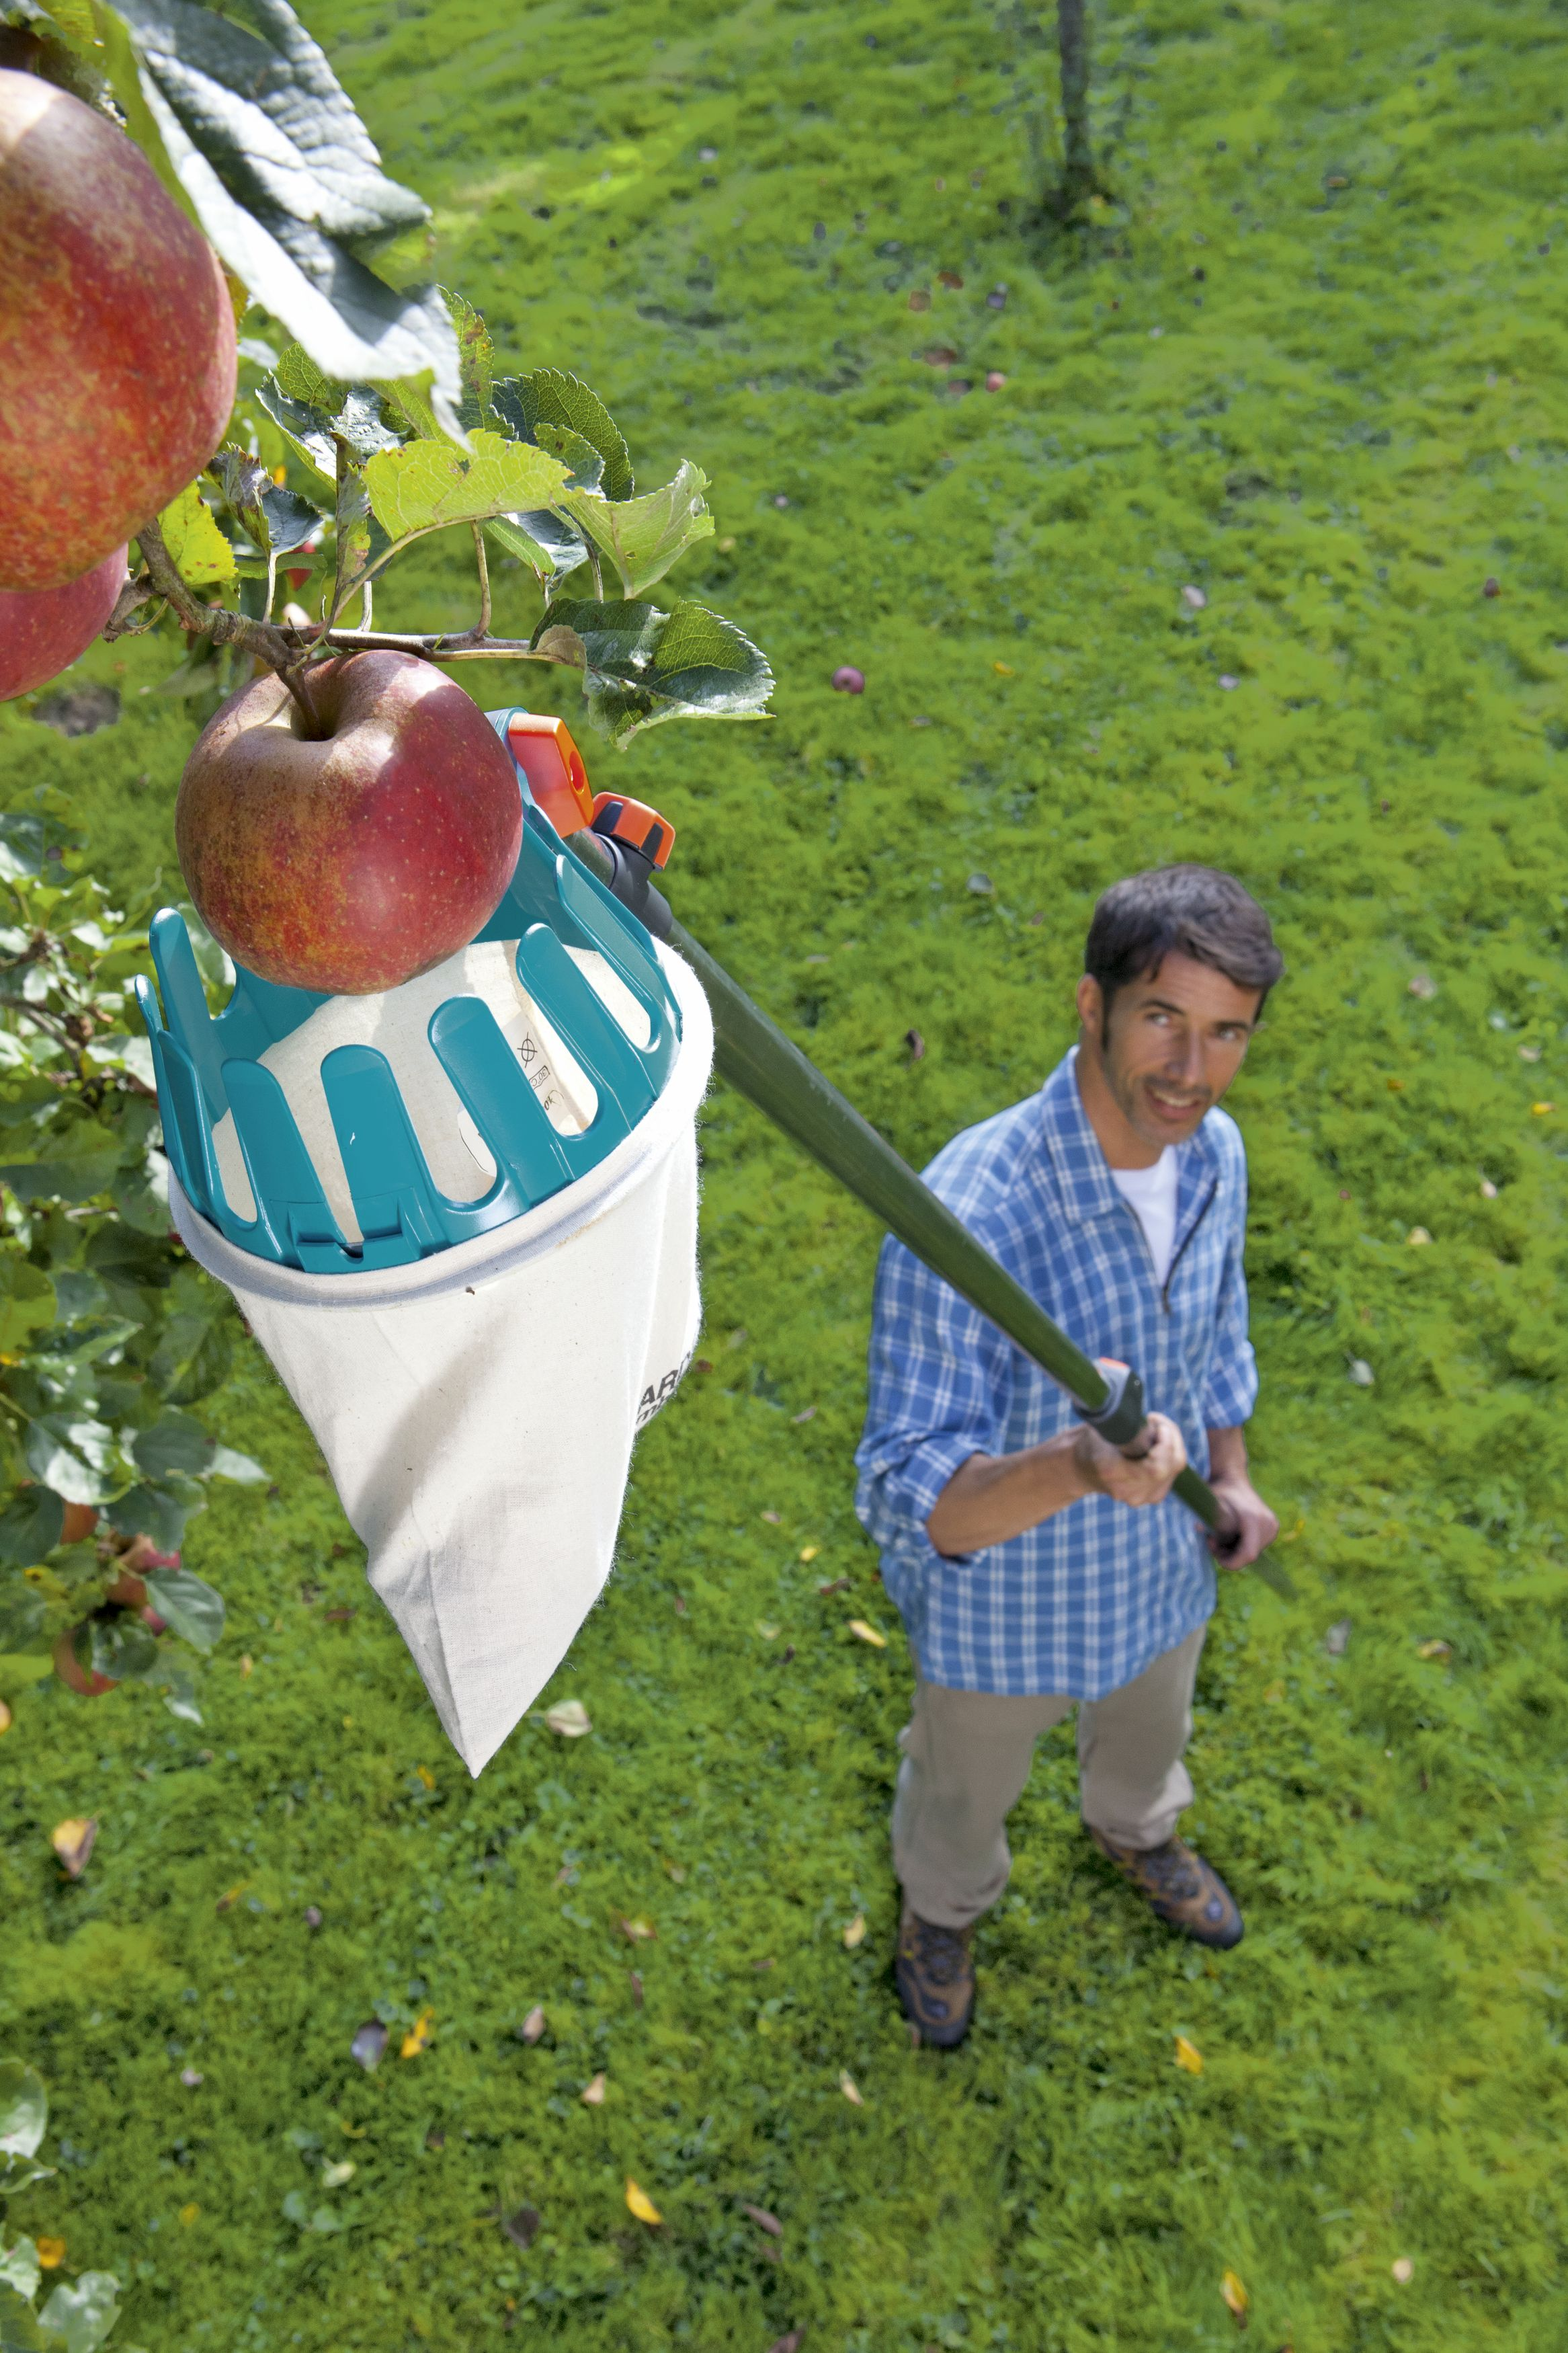 GD-0086 (3110-20 Gardena combisystem Fruit Picker) lifestyle image 2